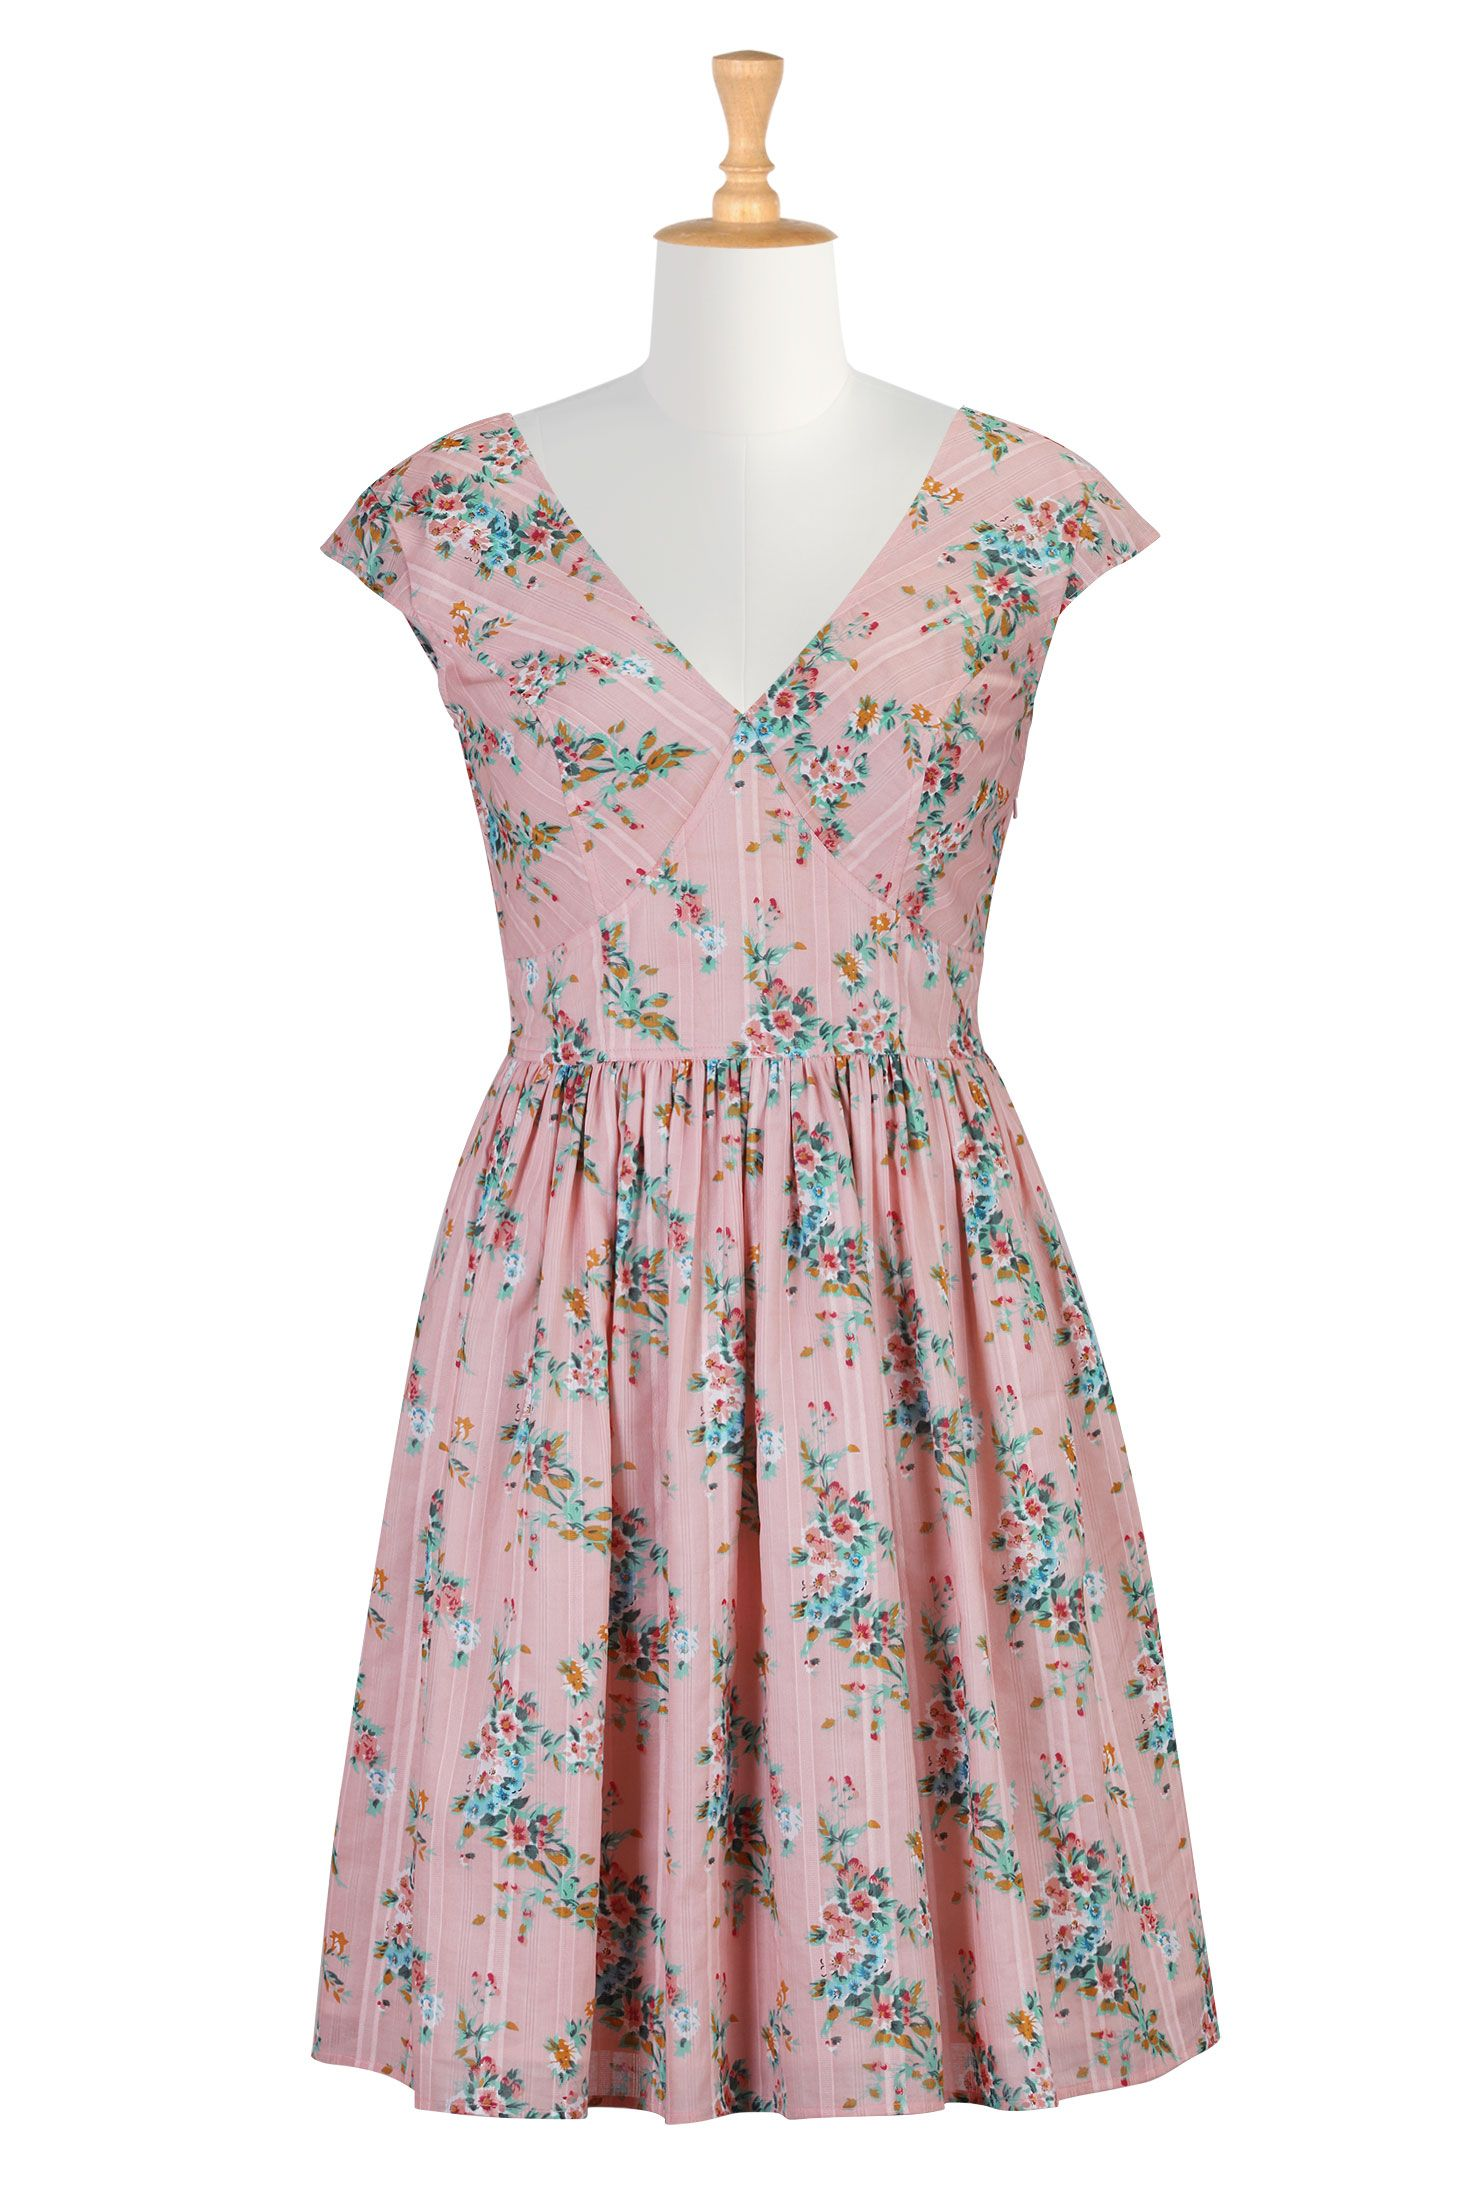 Old fashioned floral pattern dresses